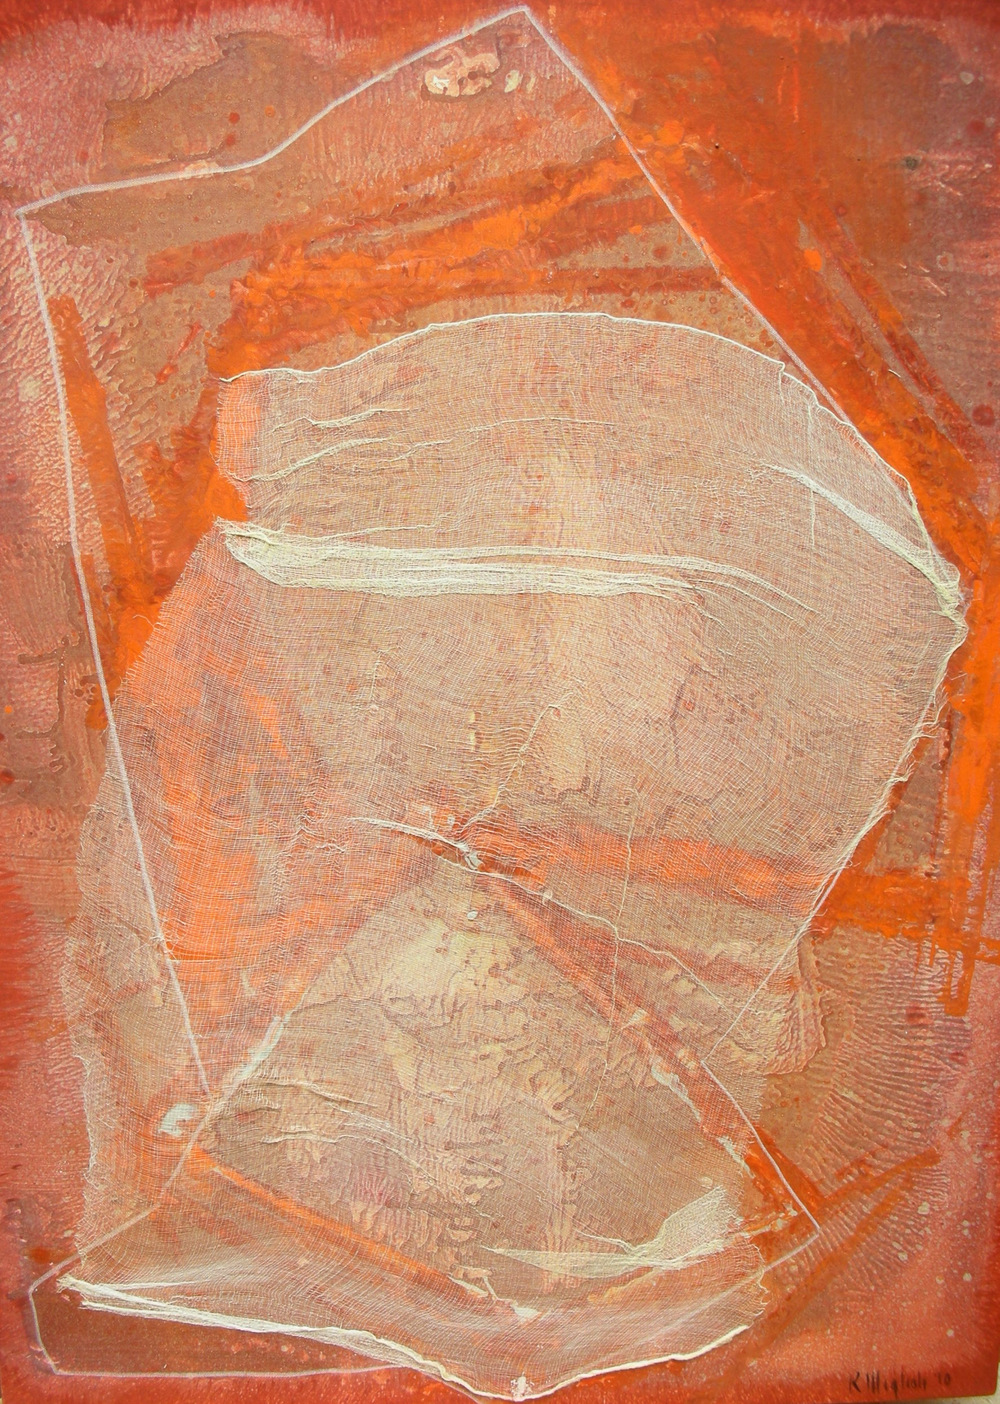 Untitled, 2010 40 x 30 inches